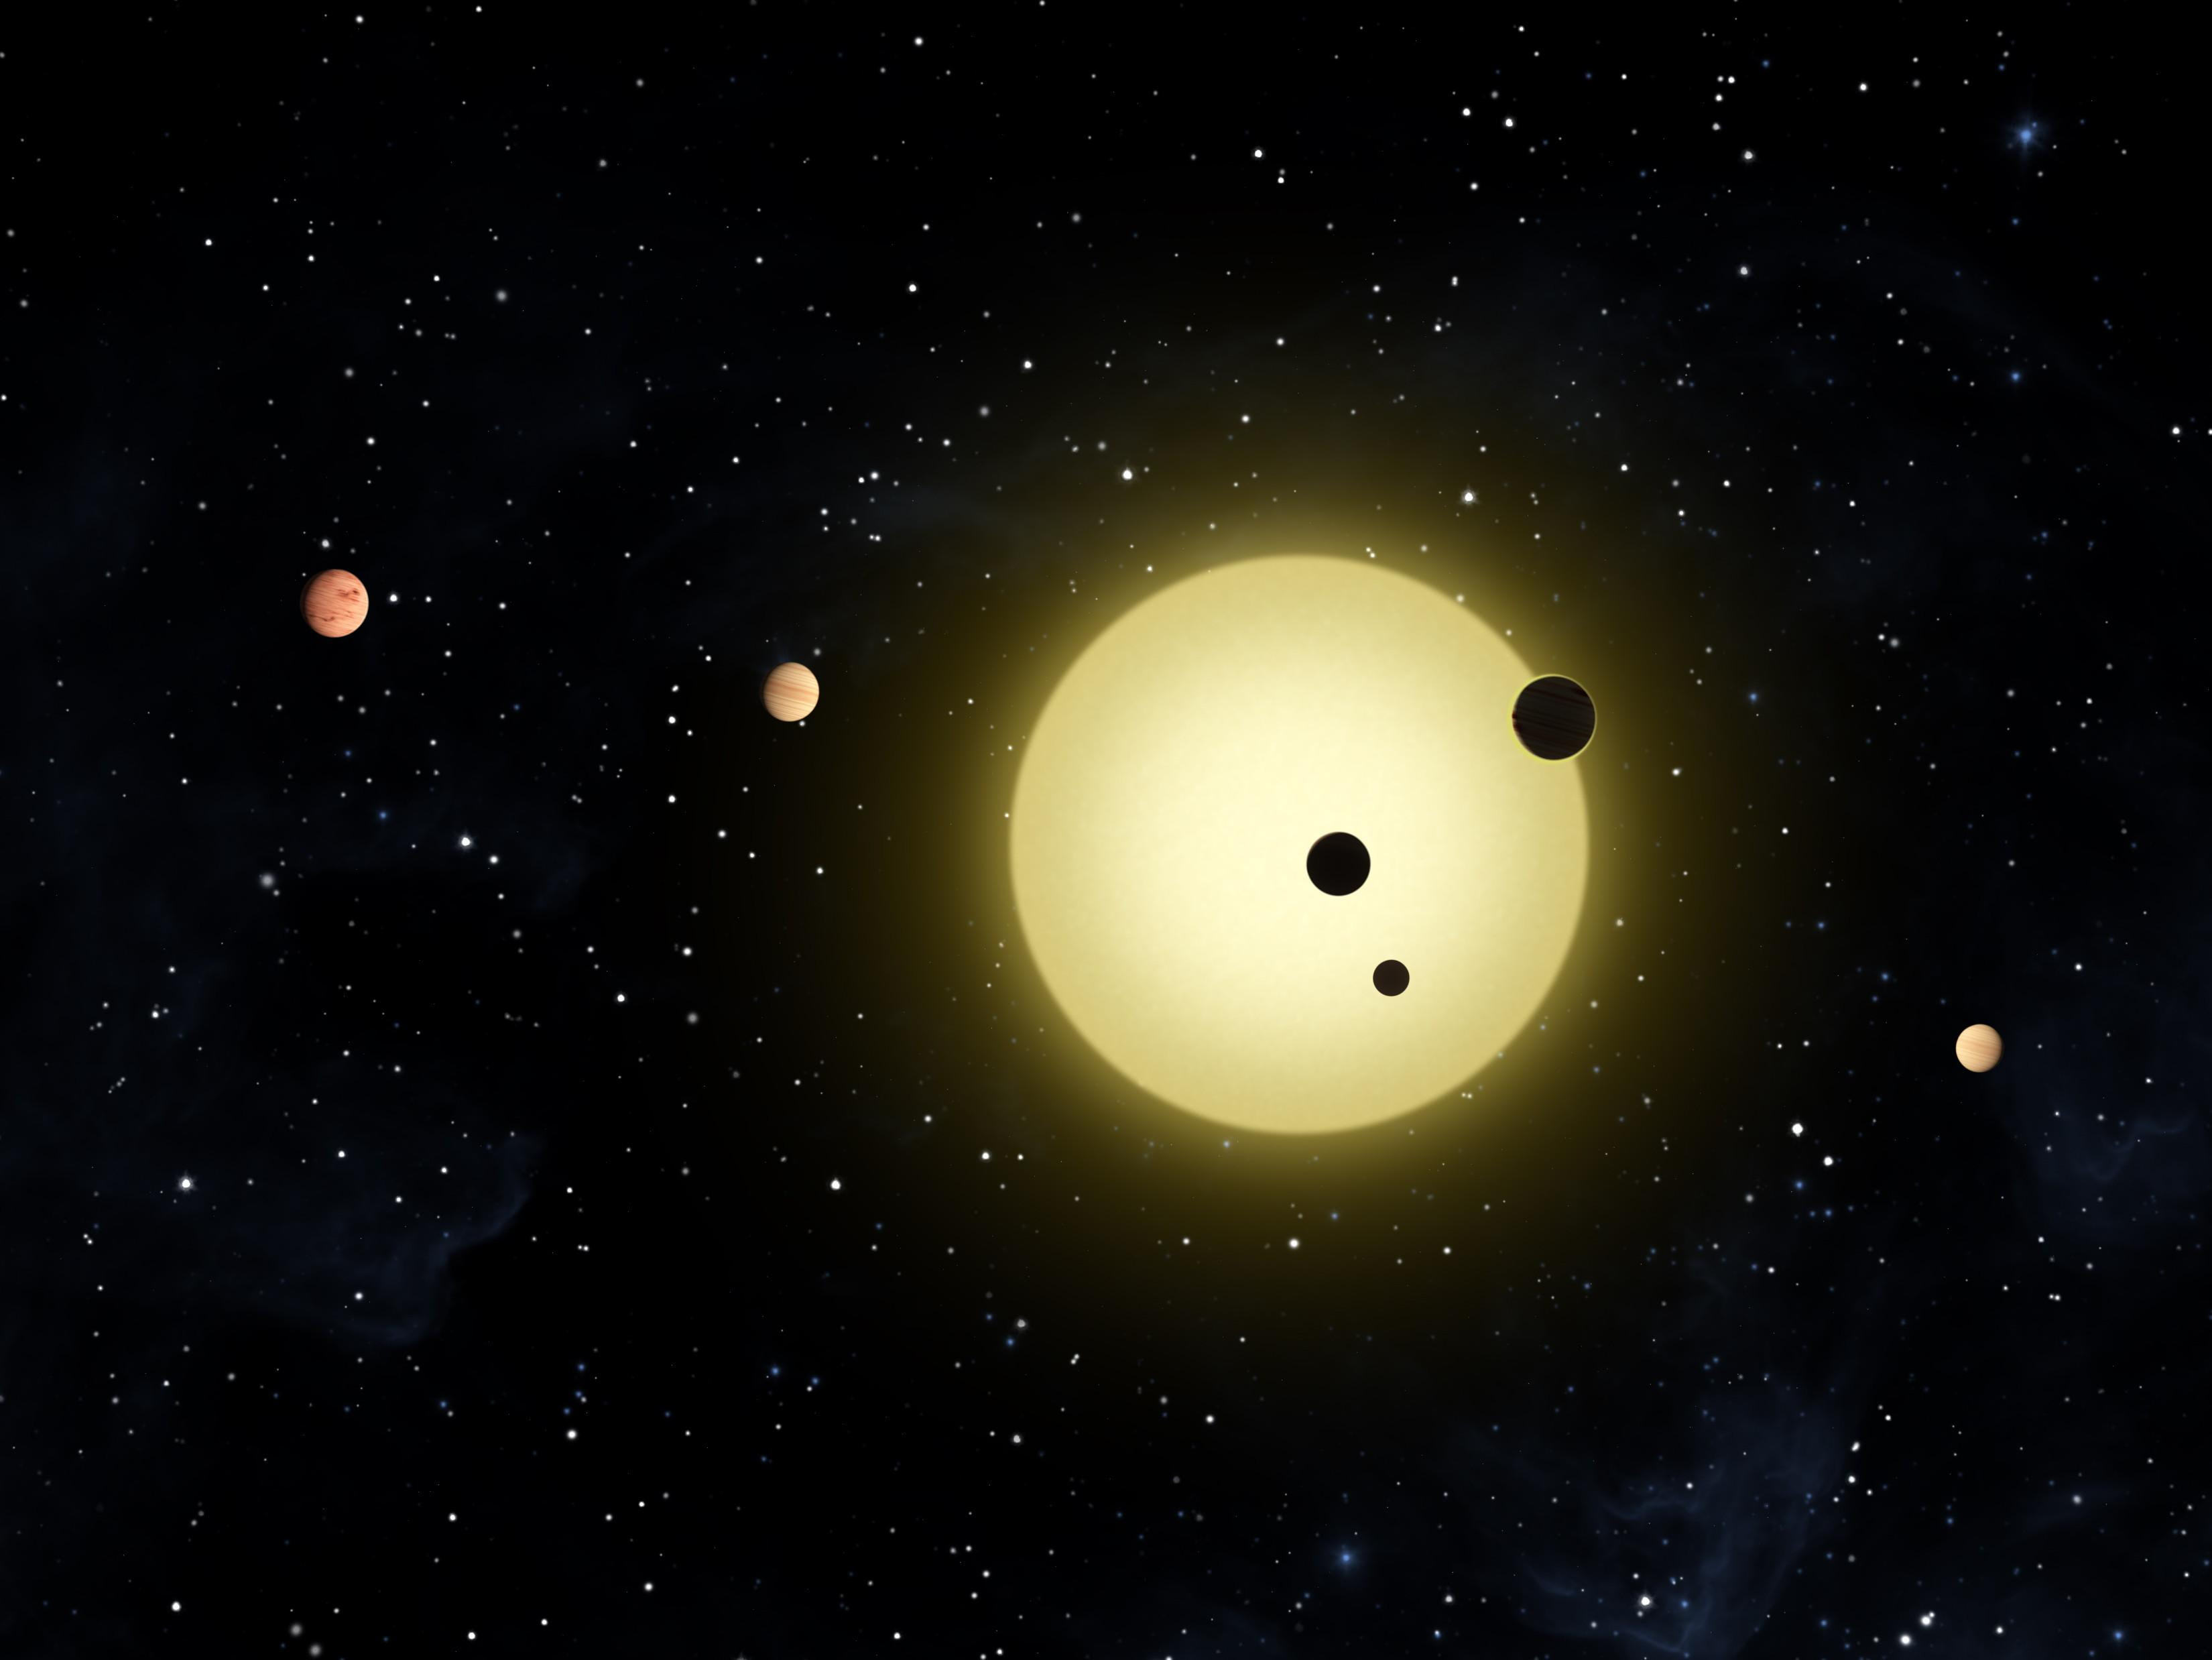 http://www.nasa.gov/images/content/511895main_Kepler-11_IntroShot_full.jpg